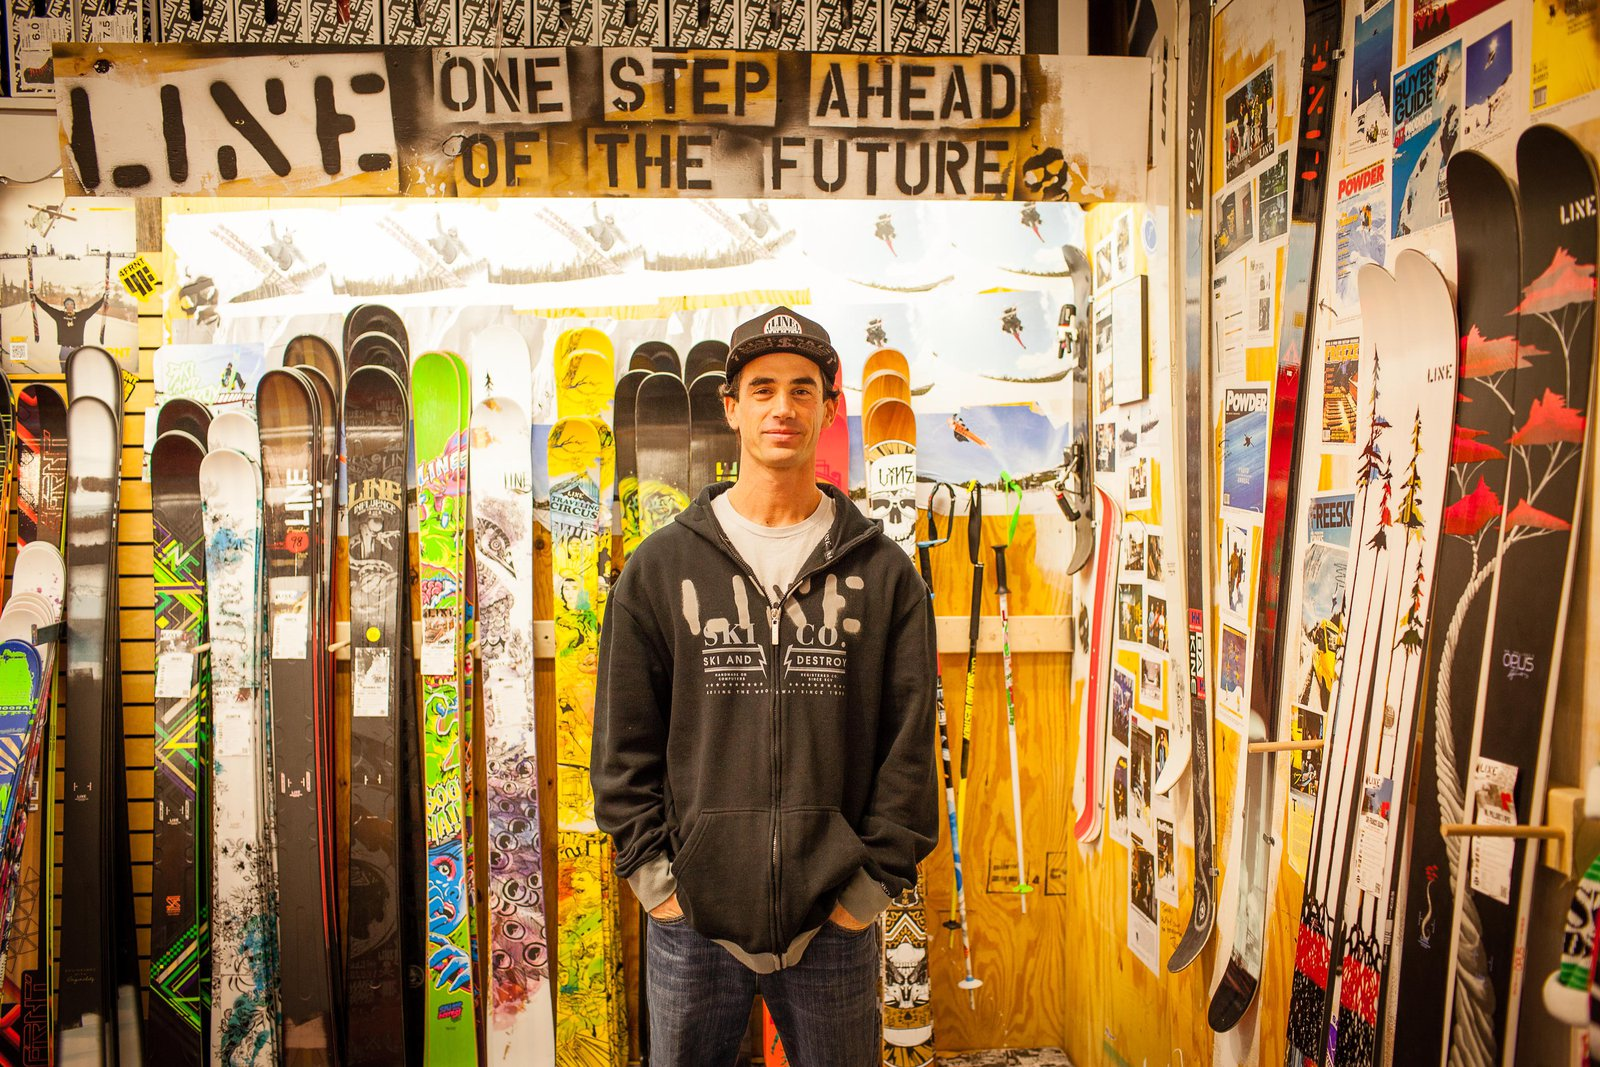 Jason Levinthal in front of Line skis